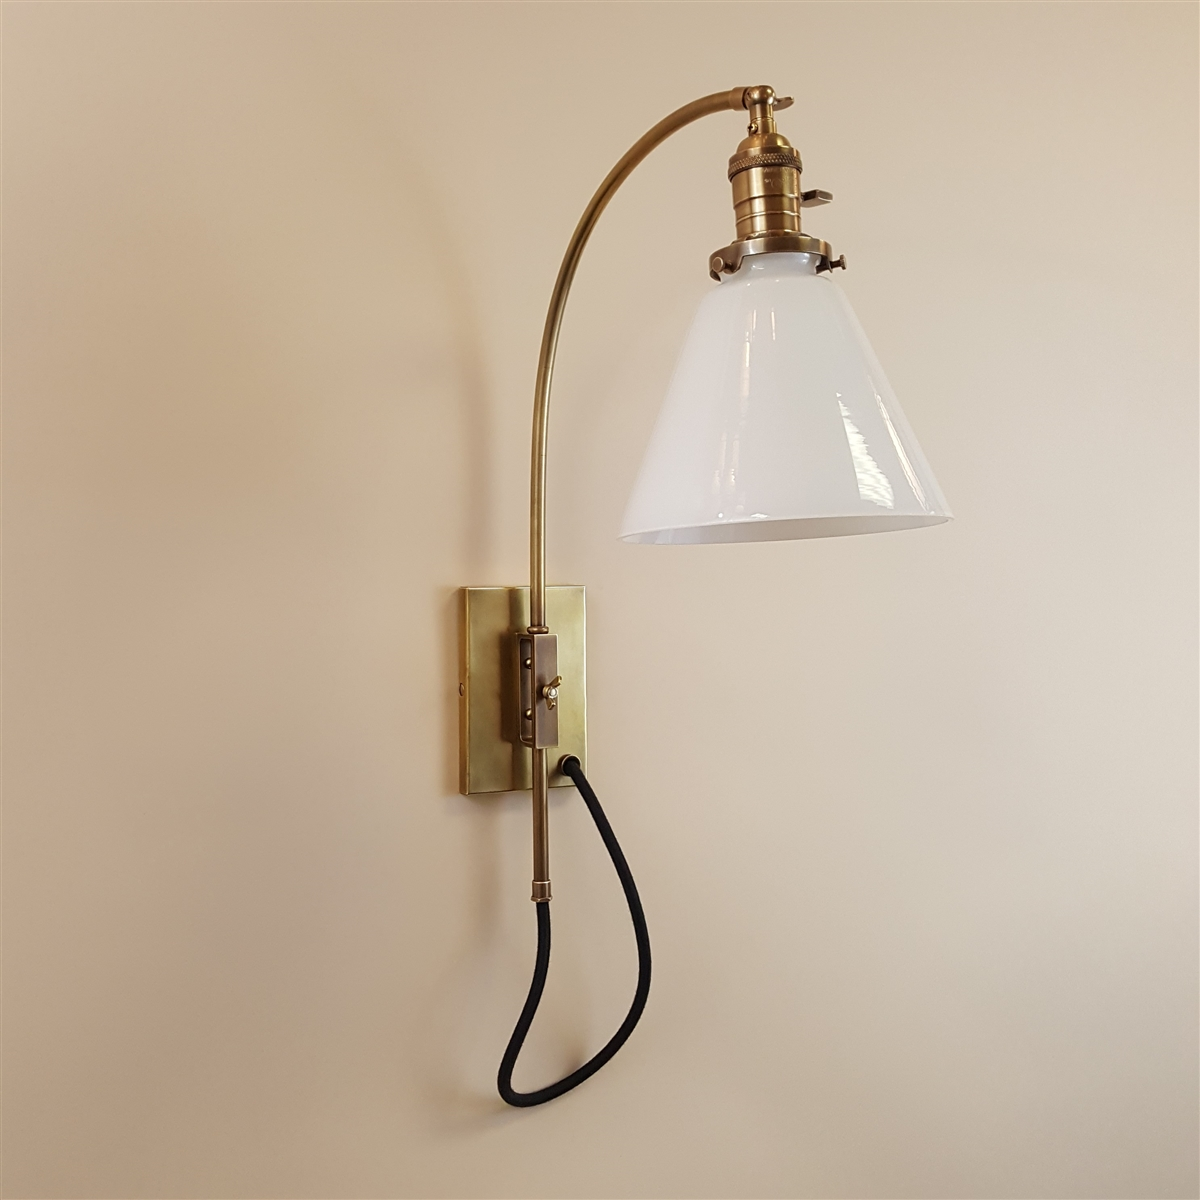 Clark Vintage Lighting